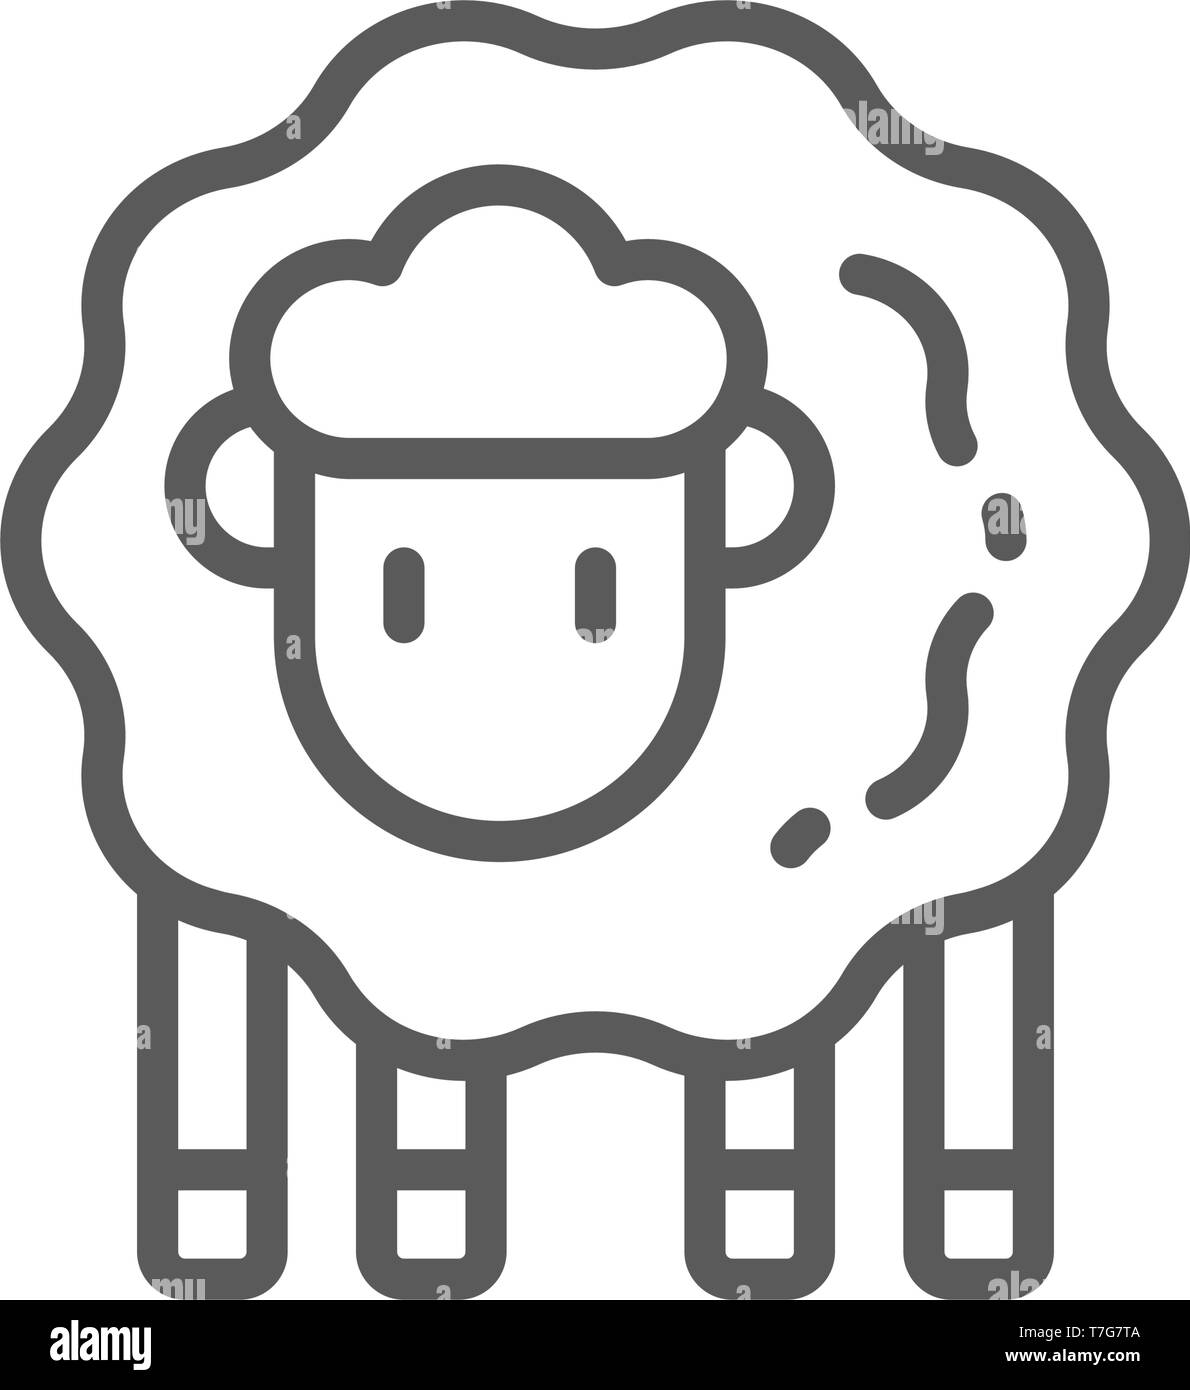 Lamb, sheep line icon. Stock Vector